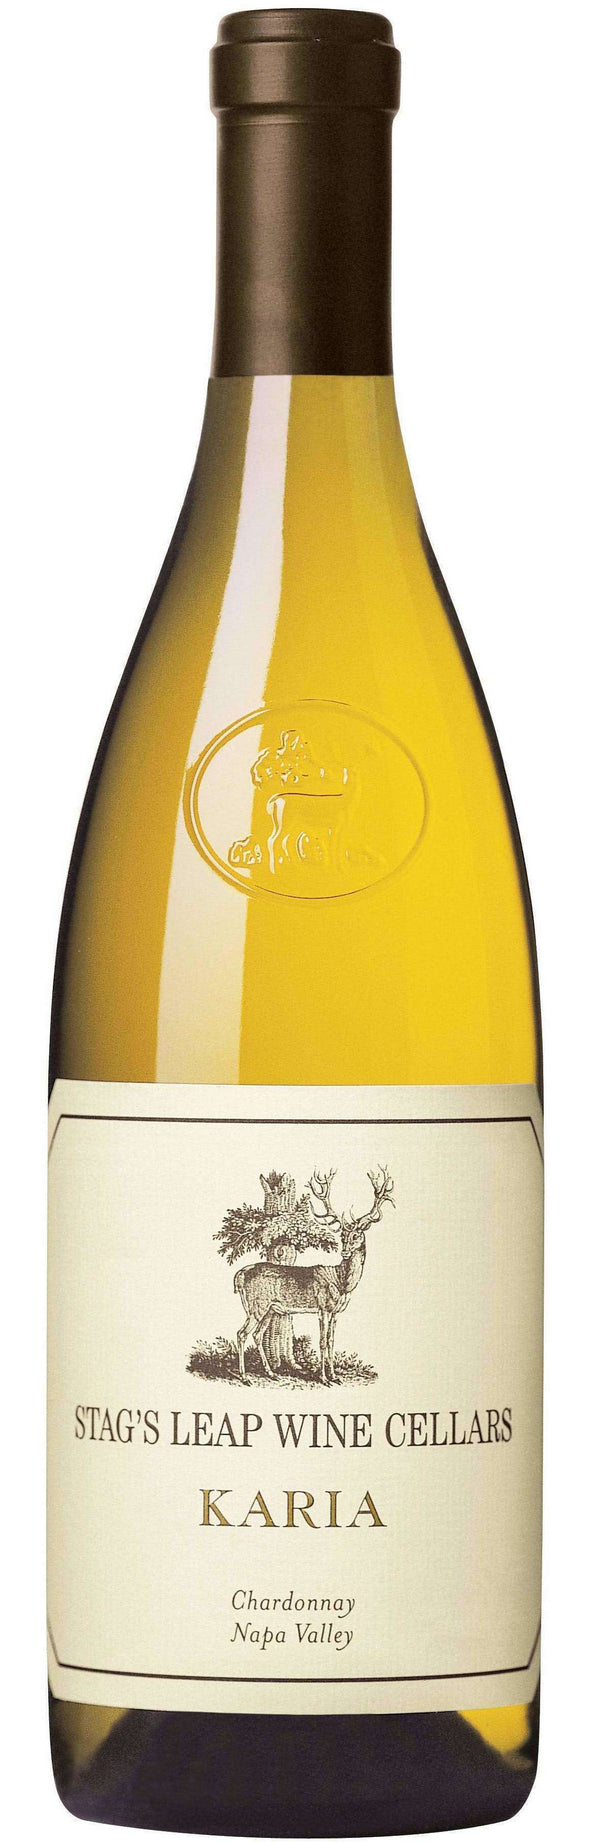 Stag's Leap Wine Cellars Karia Chardonnay 2018 750ml